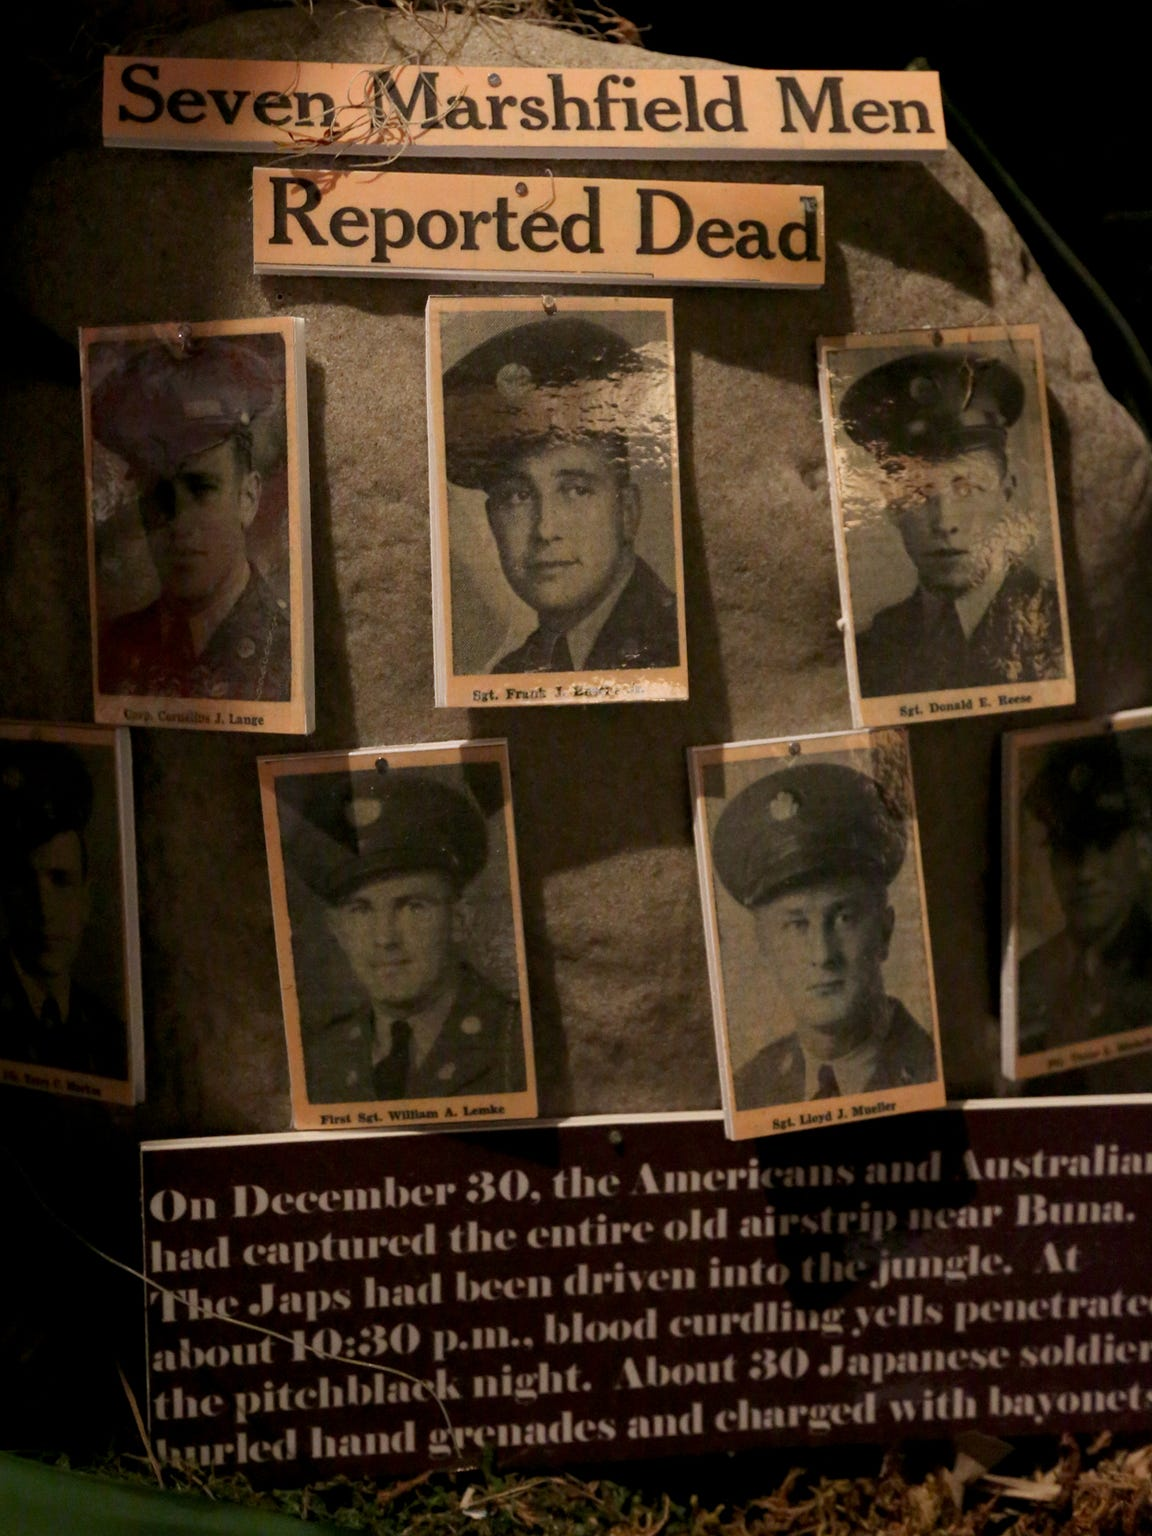 This exhibit at the Lest We Forget Military Museum in the basement of the Marshfield Public Library gives details of when seven soldiers from Marshfield were killed in a single day in World War II. The exhibit was photographed Oct. 21.